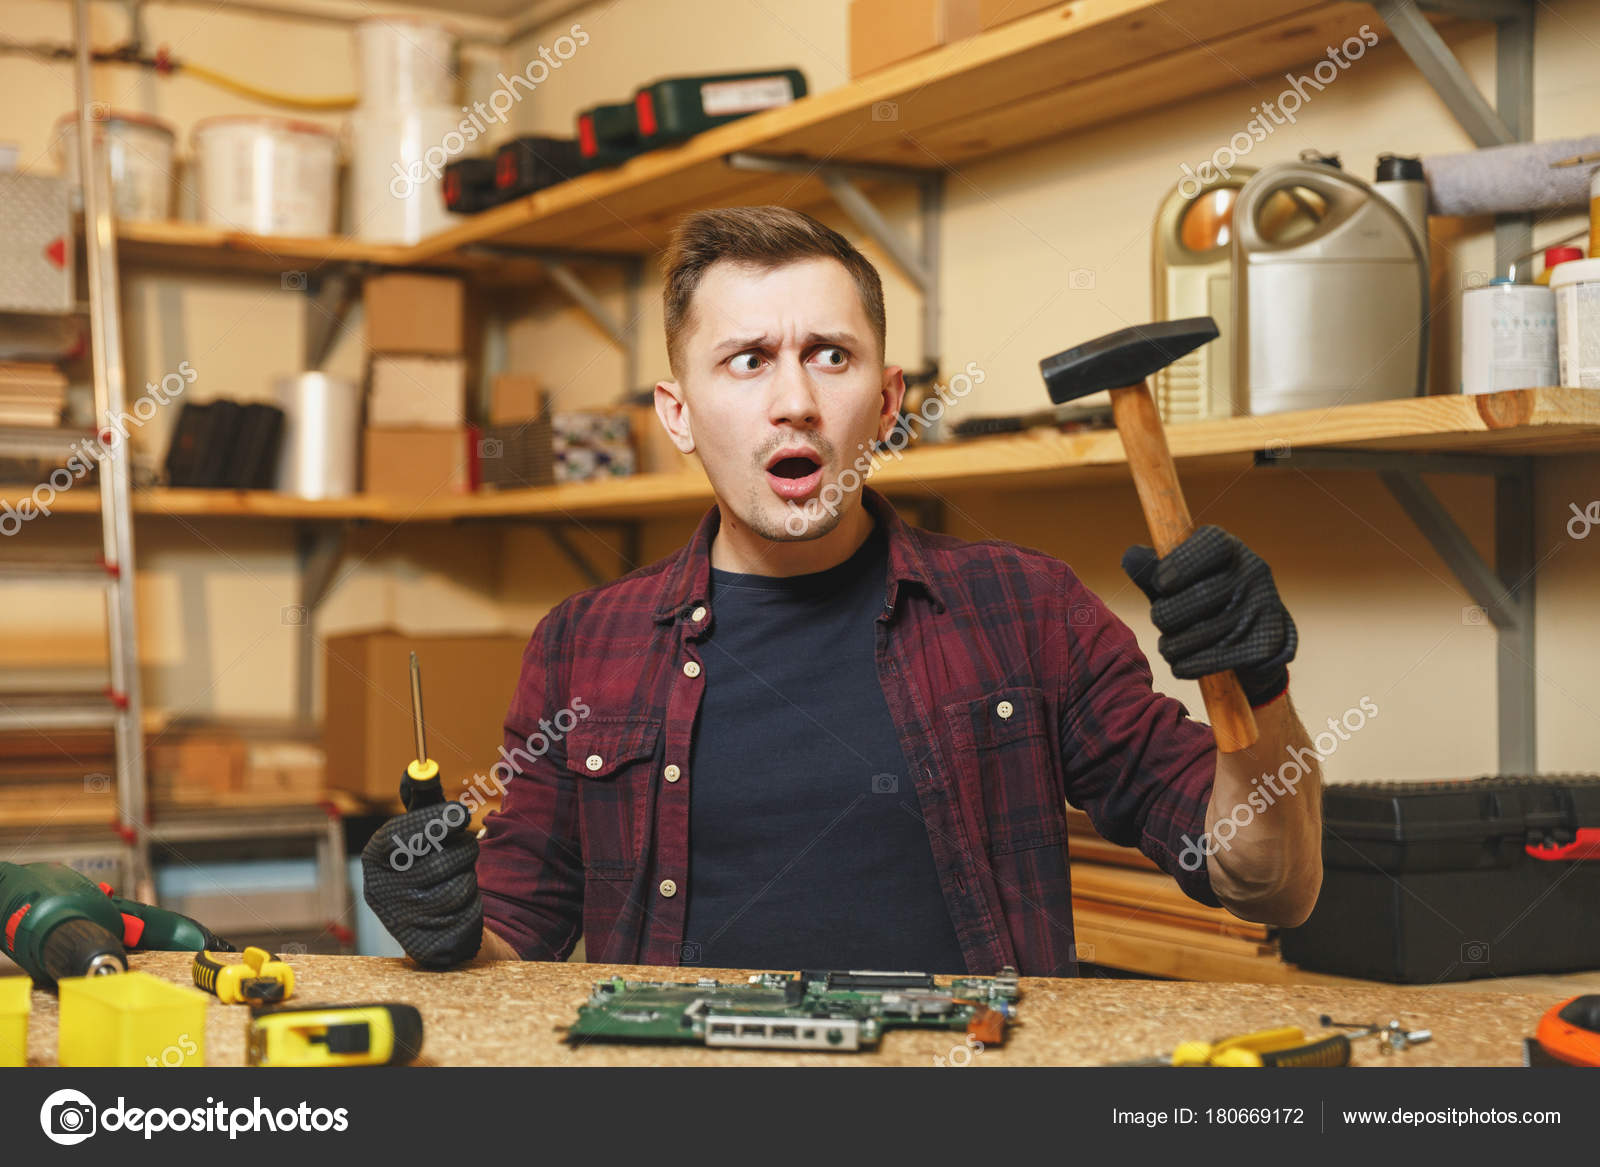 Multimeter For Electrician Caucasian Young Man In Plaid Shirt Electric Circuit Board Processor Tshirt Black T Digital Electronic Engineer Repairing Soldering Computer Pc Motherboard Workshop At Wooden Table With